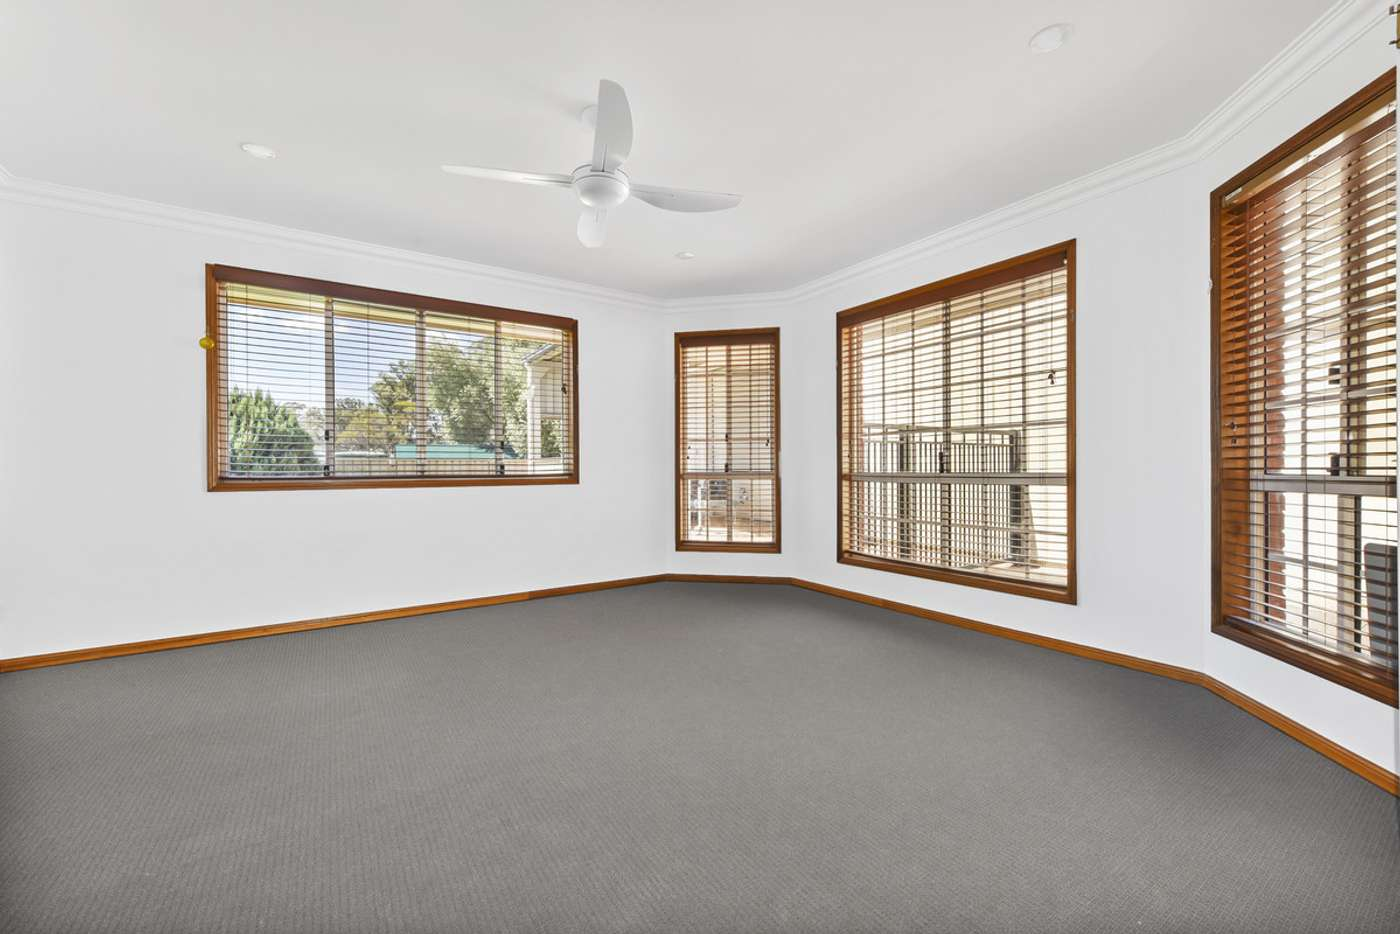 Sixth view of Homely house listing, 10 Manooka Crescent, Highfields QLD 4352